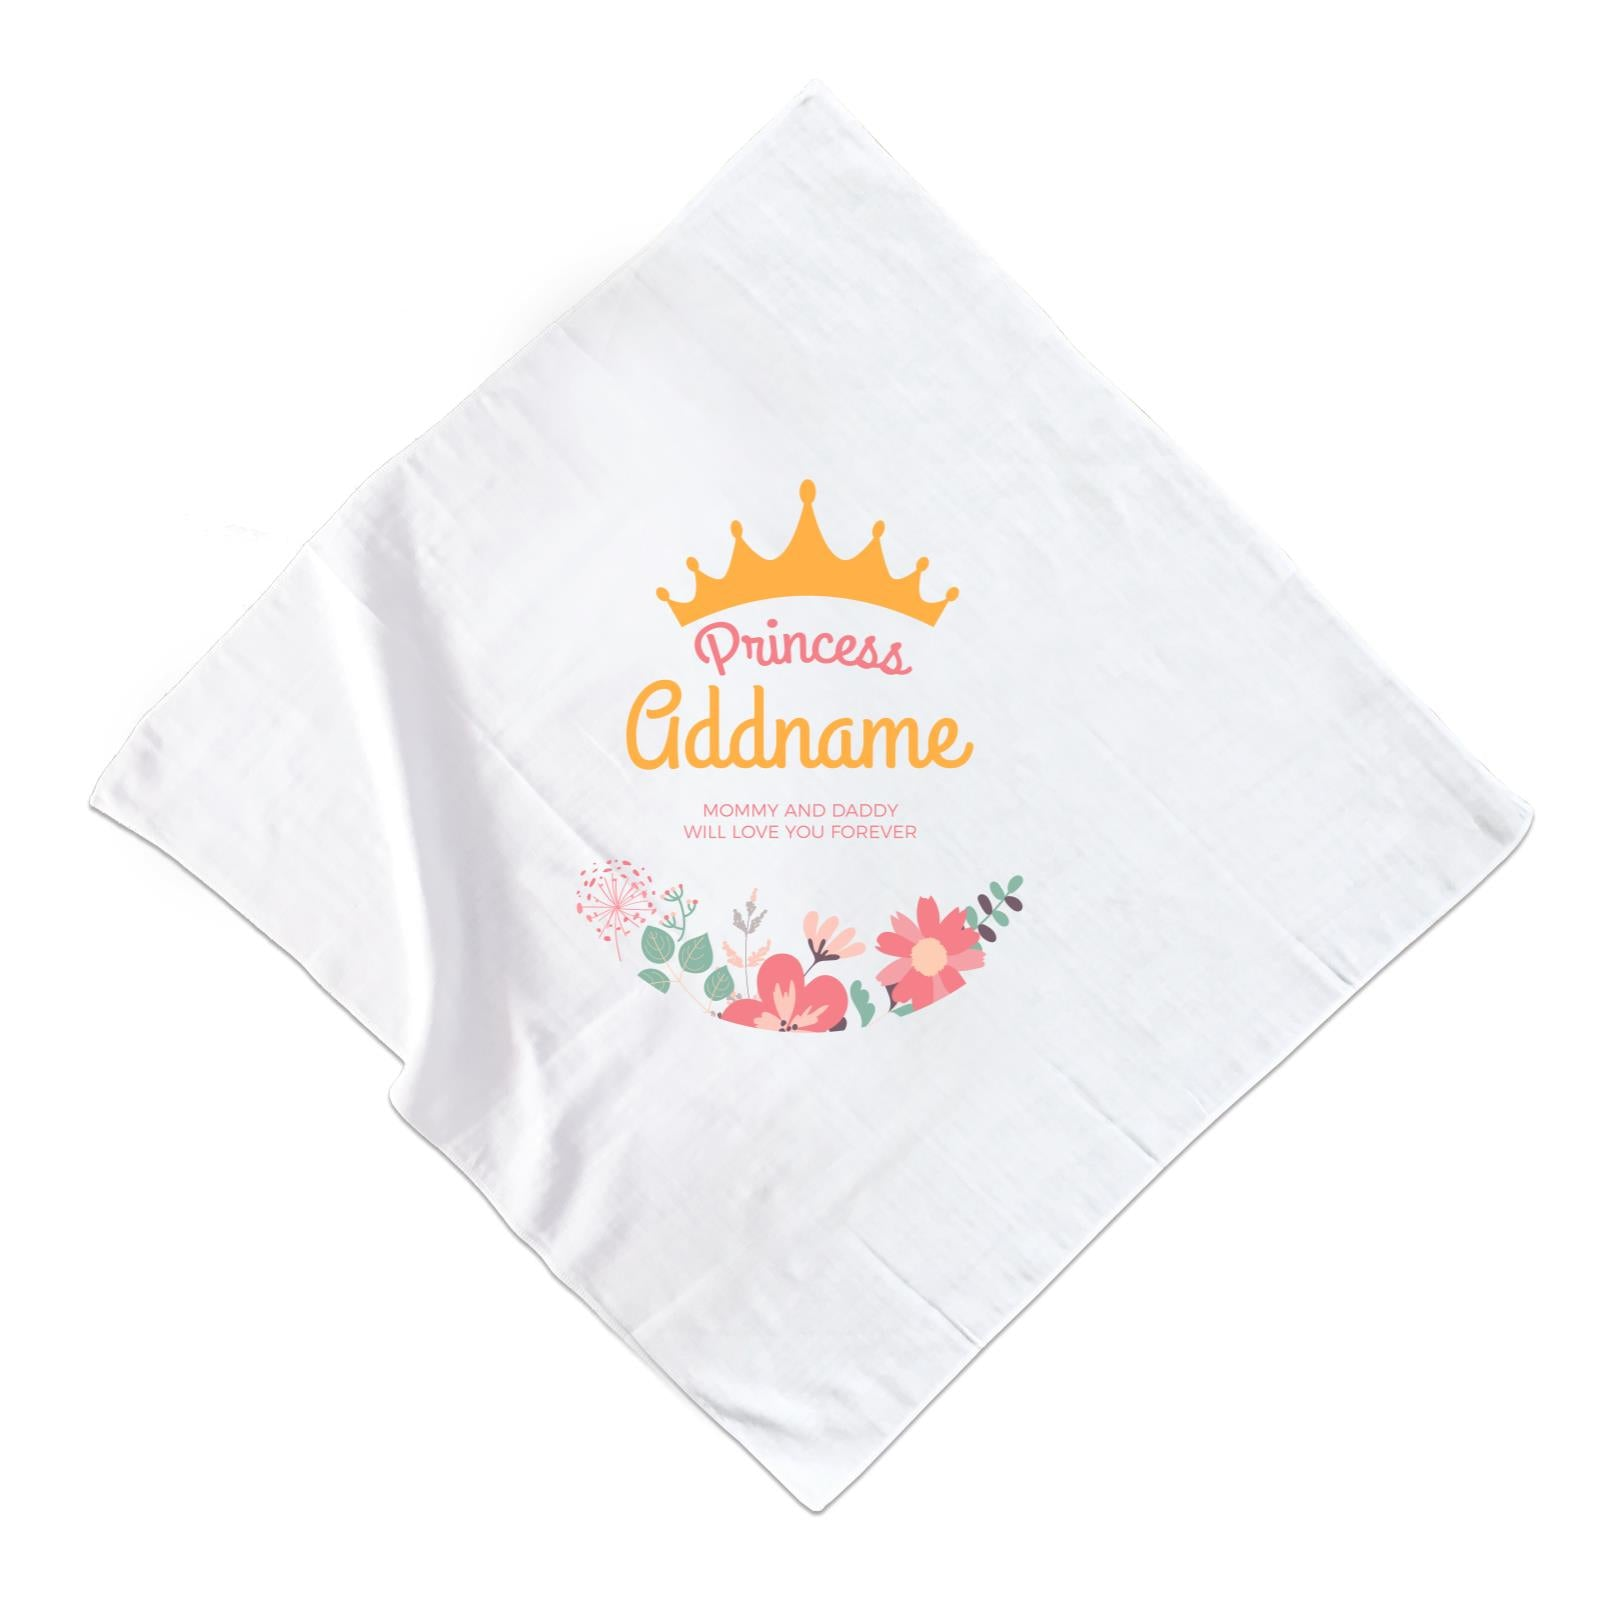 Princess with Tiara and Flowers 2 Personalizable with Name and Text Muslin Square